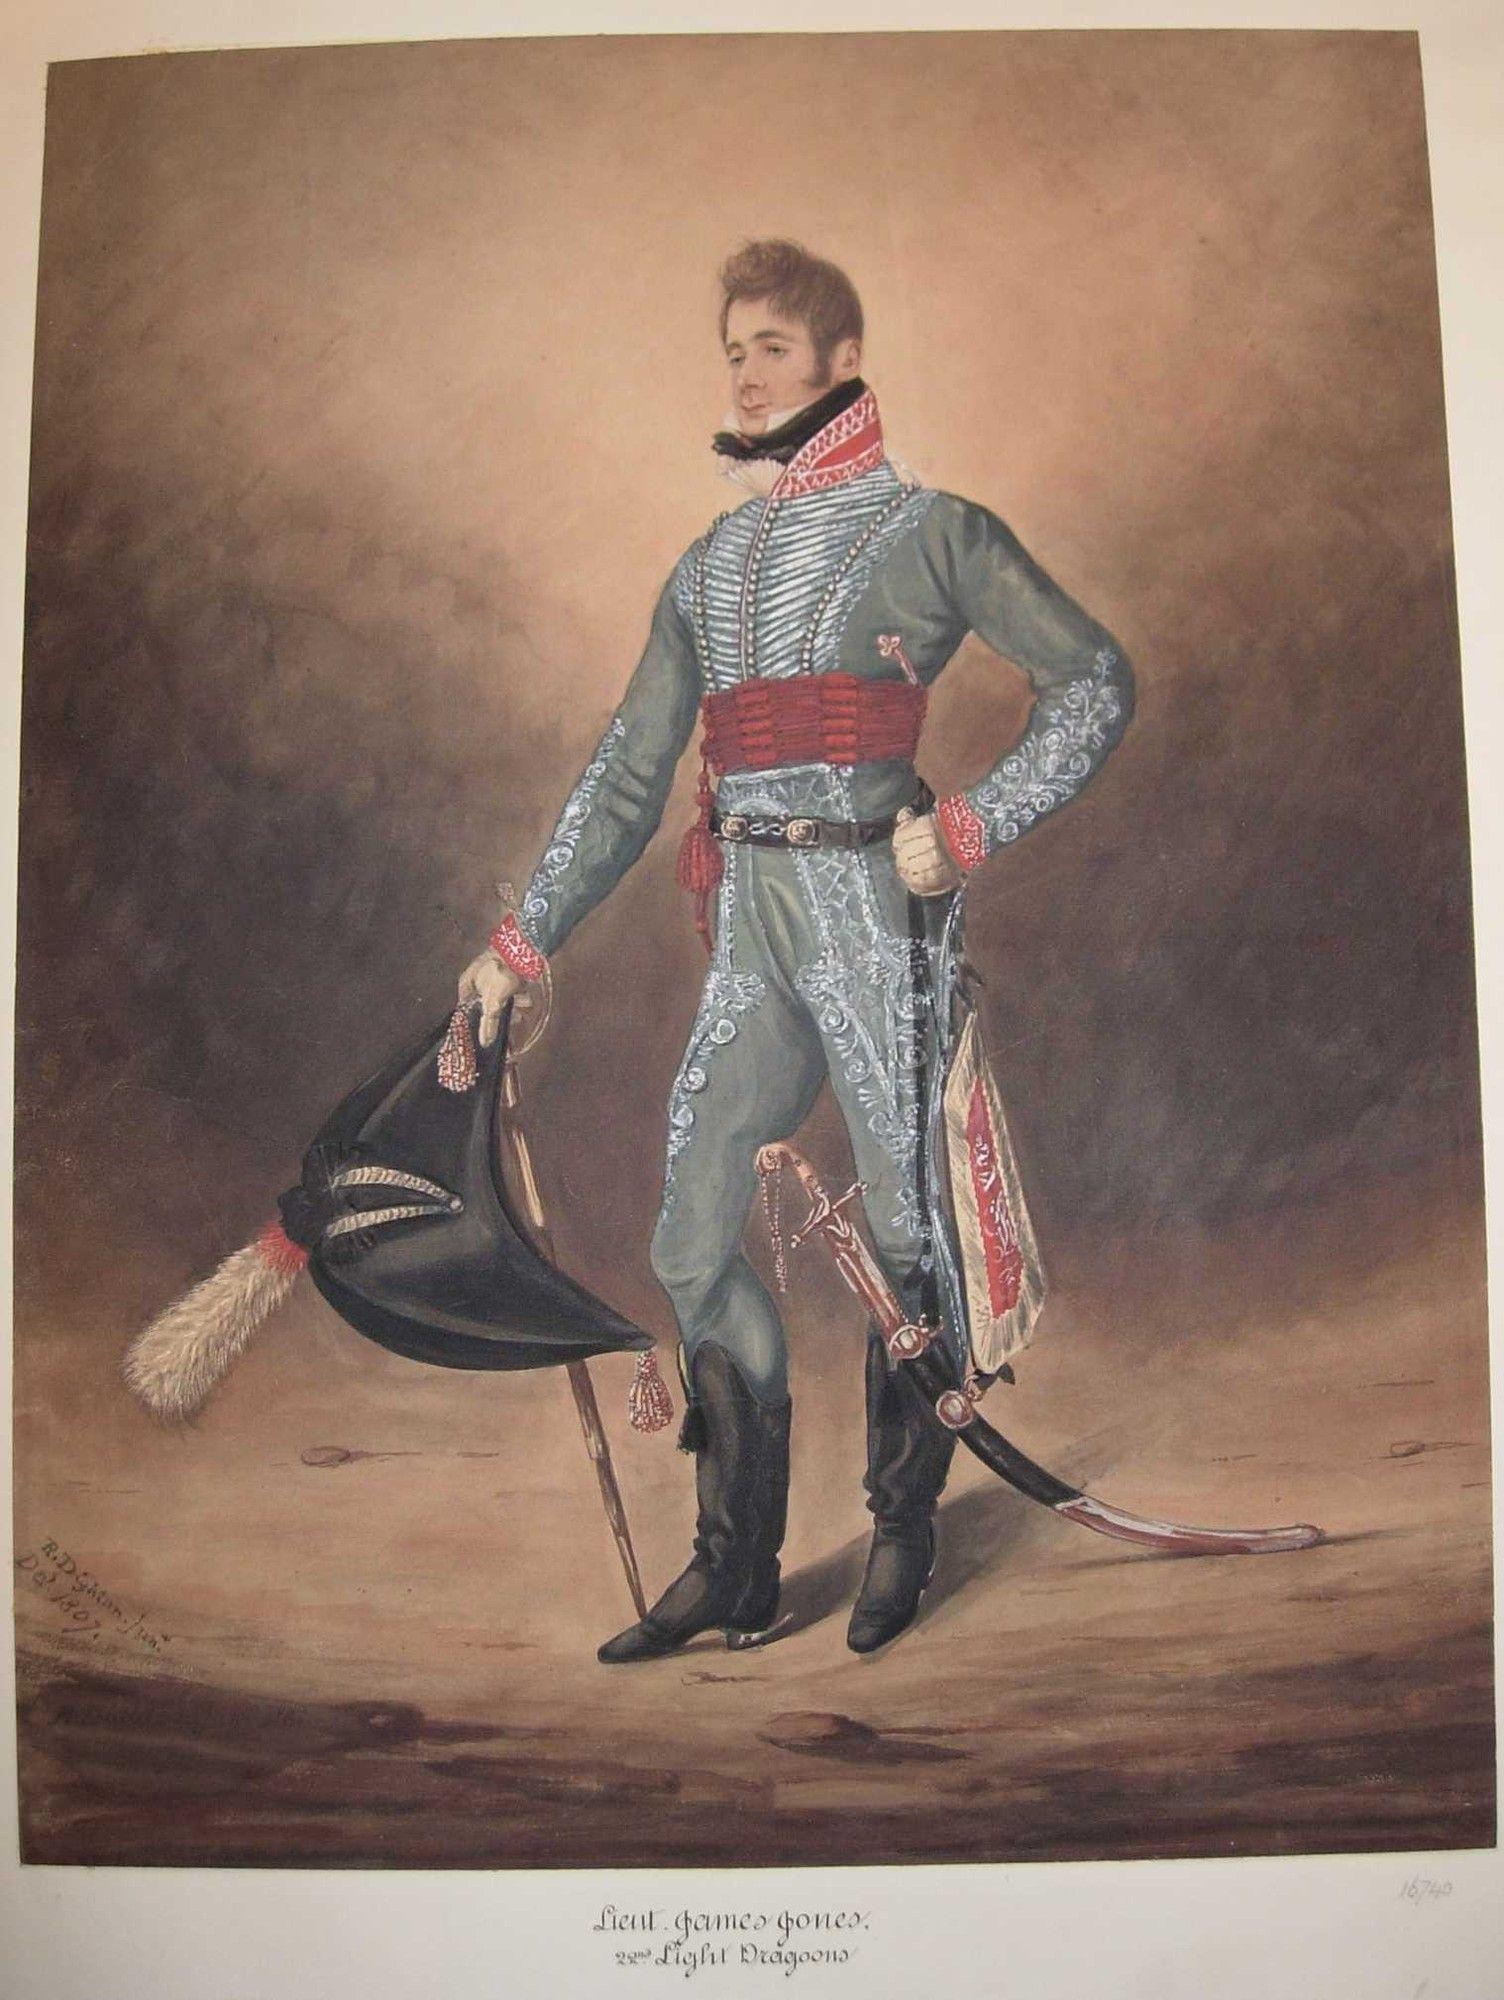 British; 22nd Light Dragoons, Lieutenant James Jones, 1807  by Robert Dighton